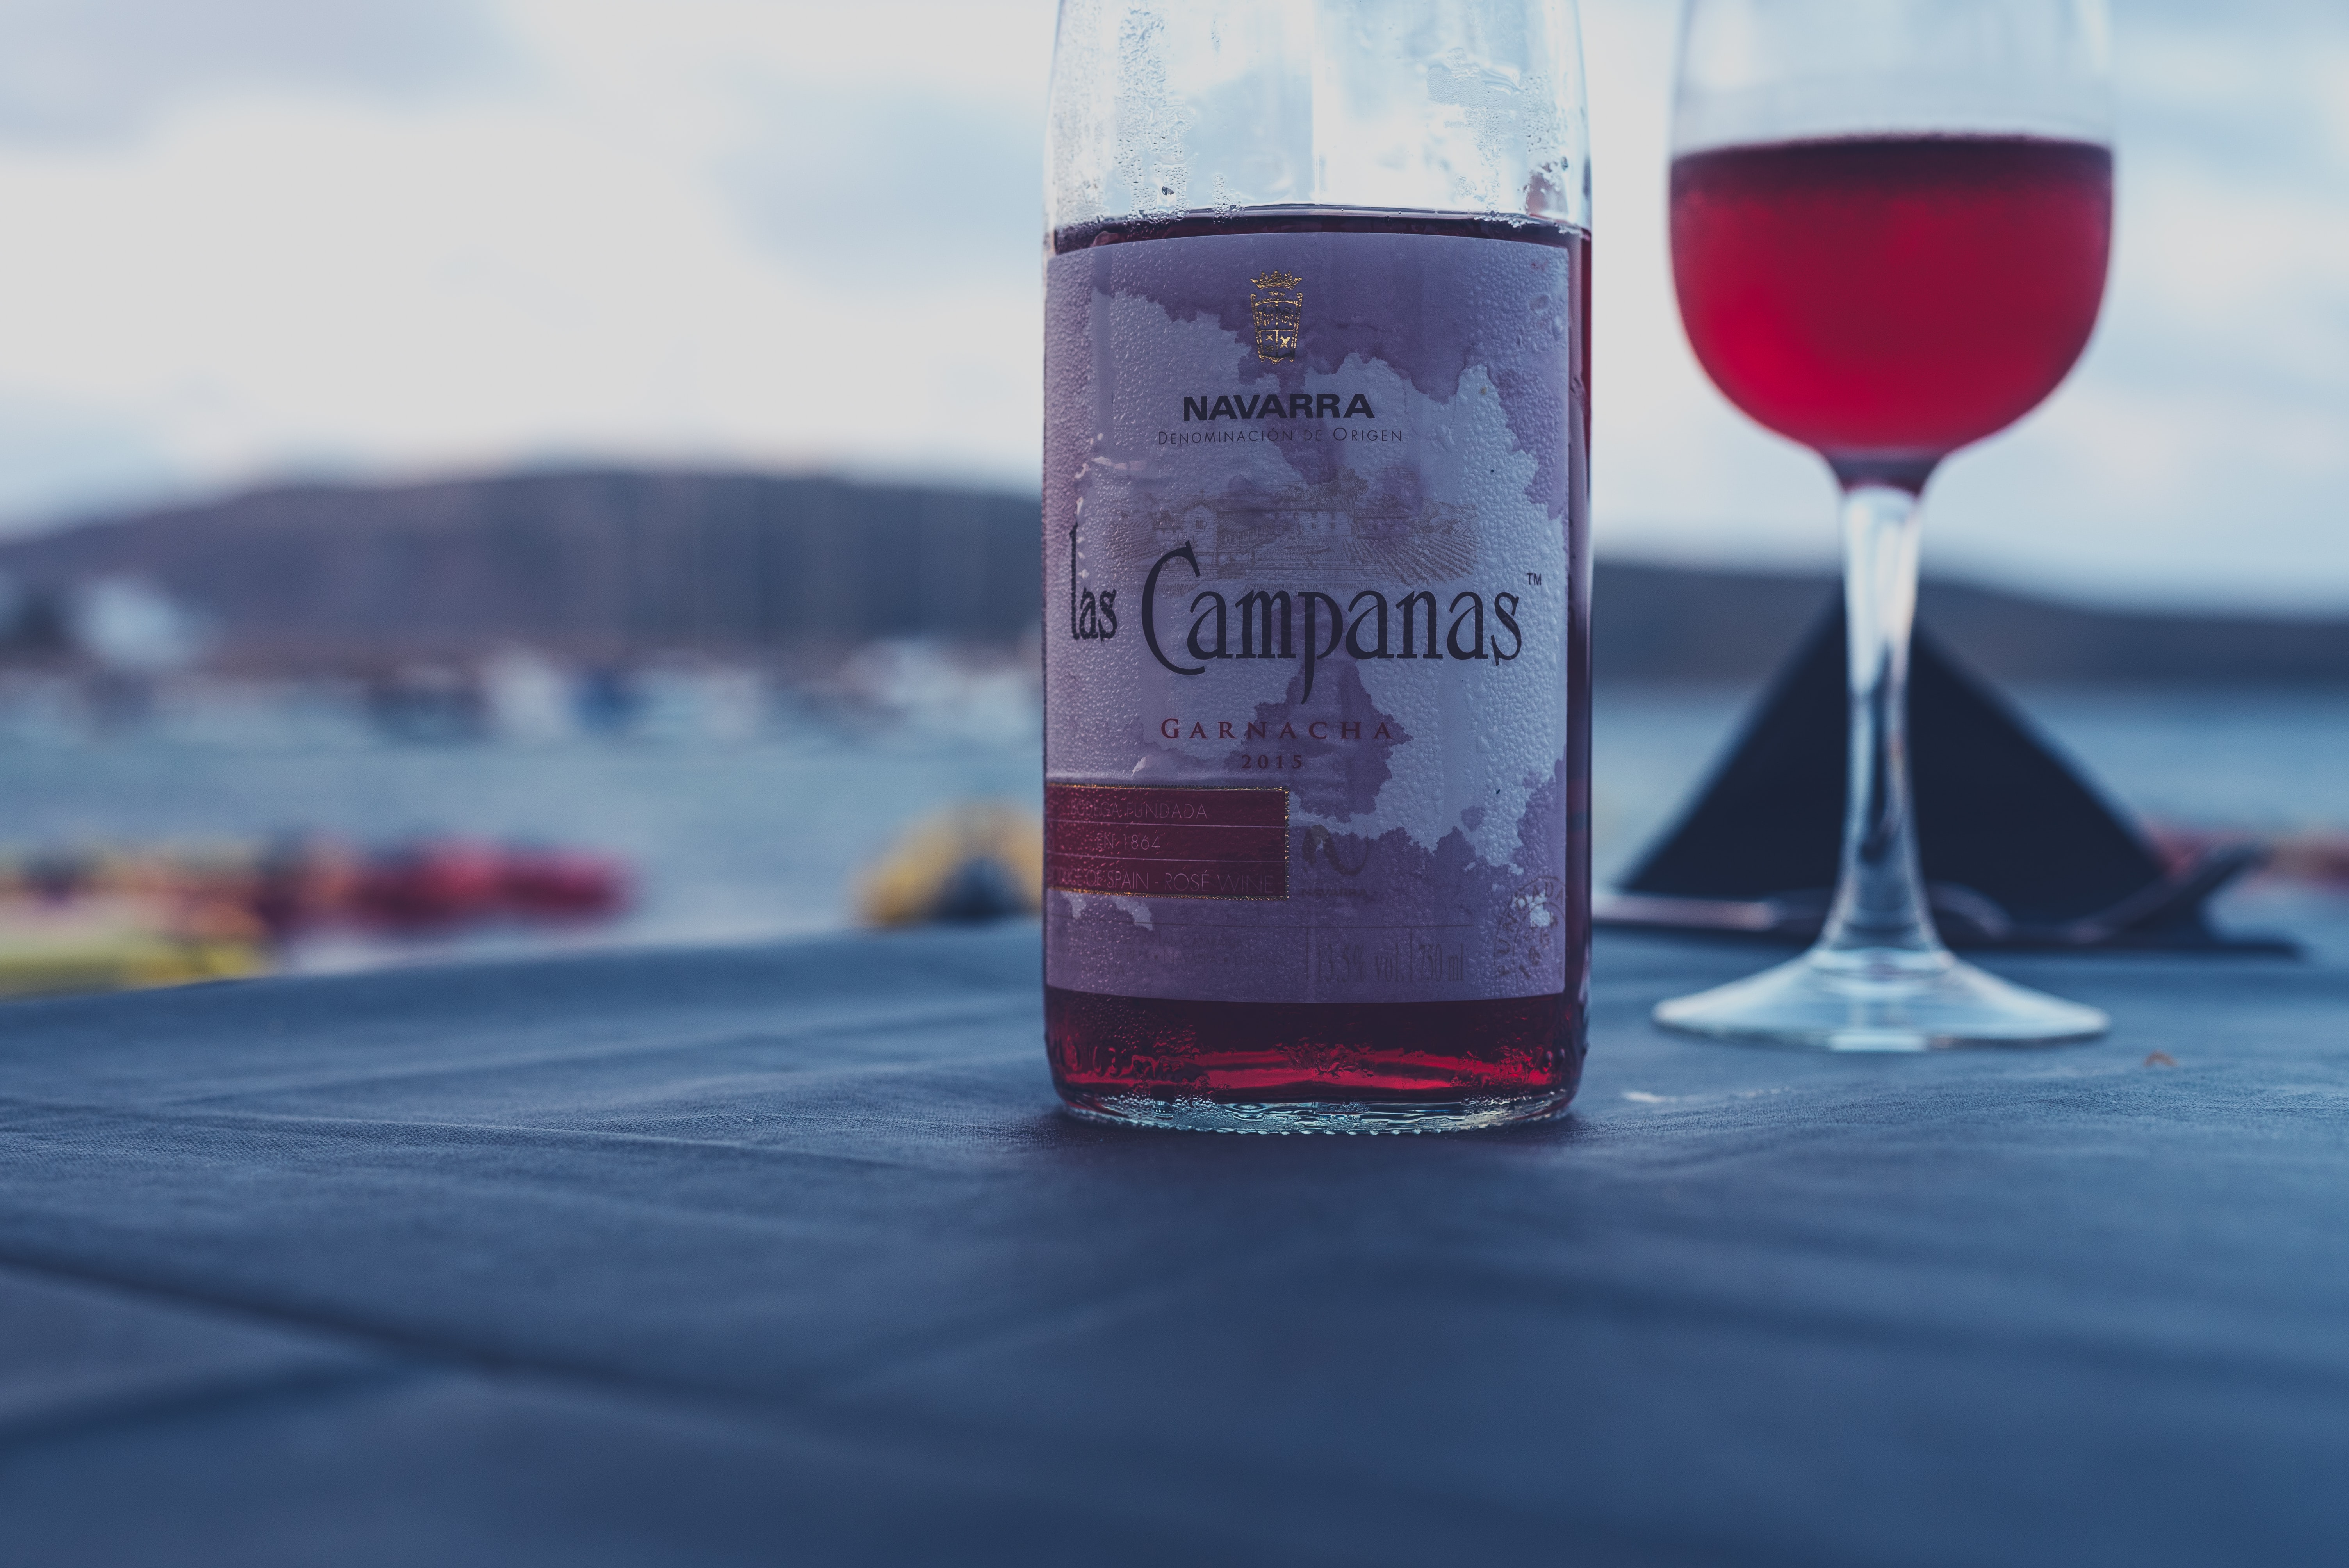 Campanas red wine bottle beside wine glass